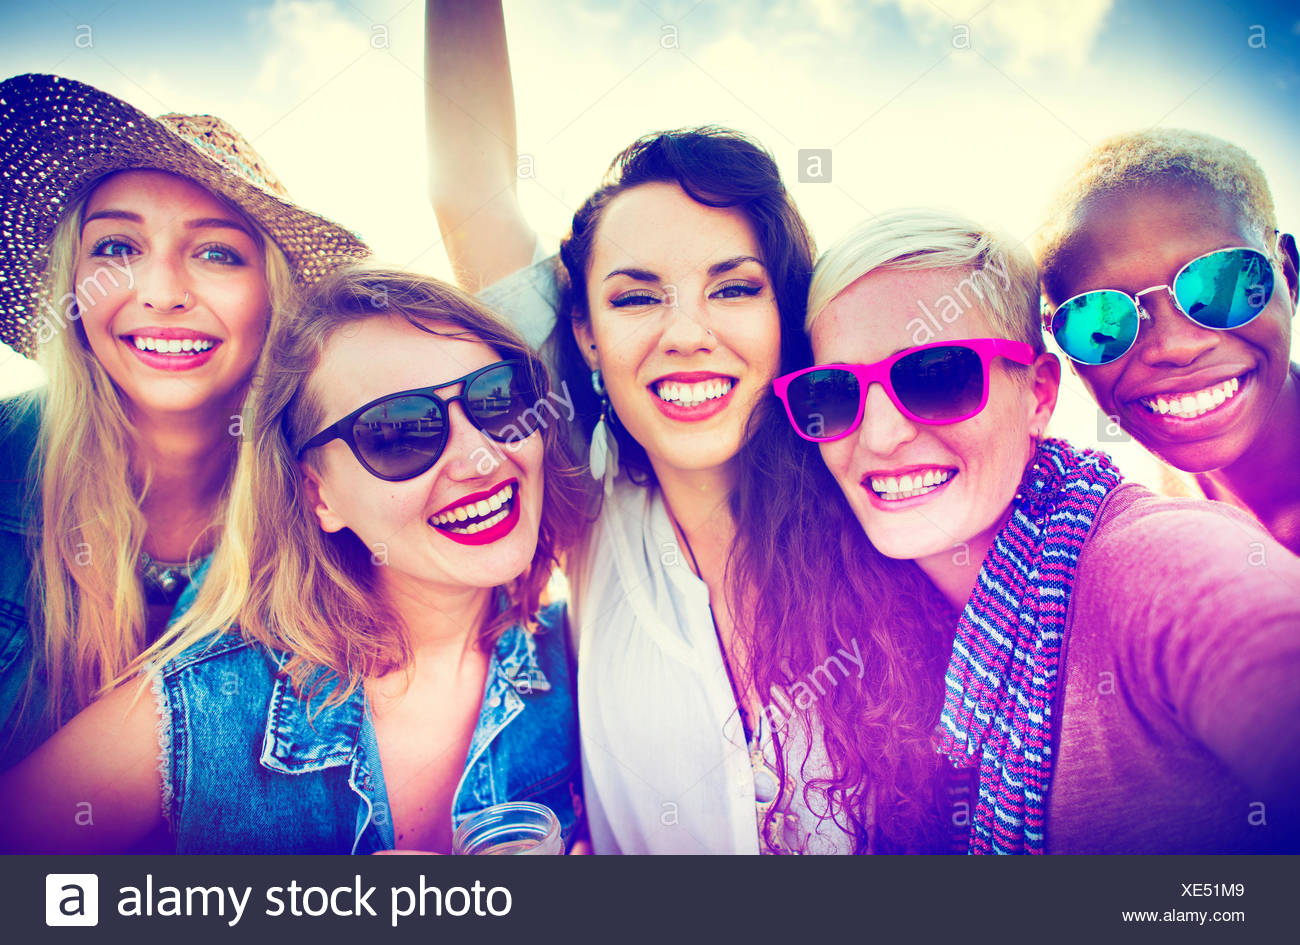 Girls Friendship Smiling Summer Vacations Together Concept - Stock Image